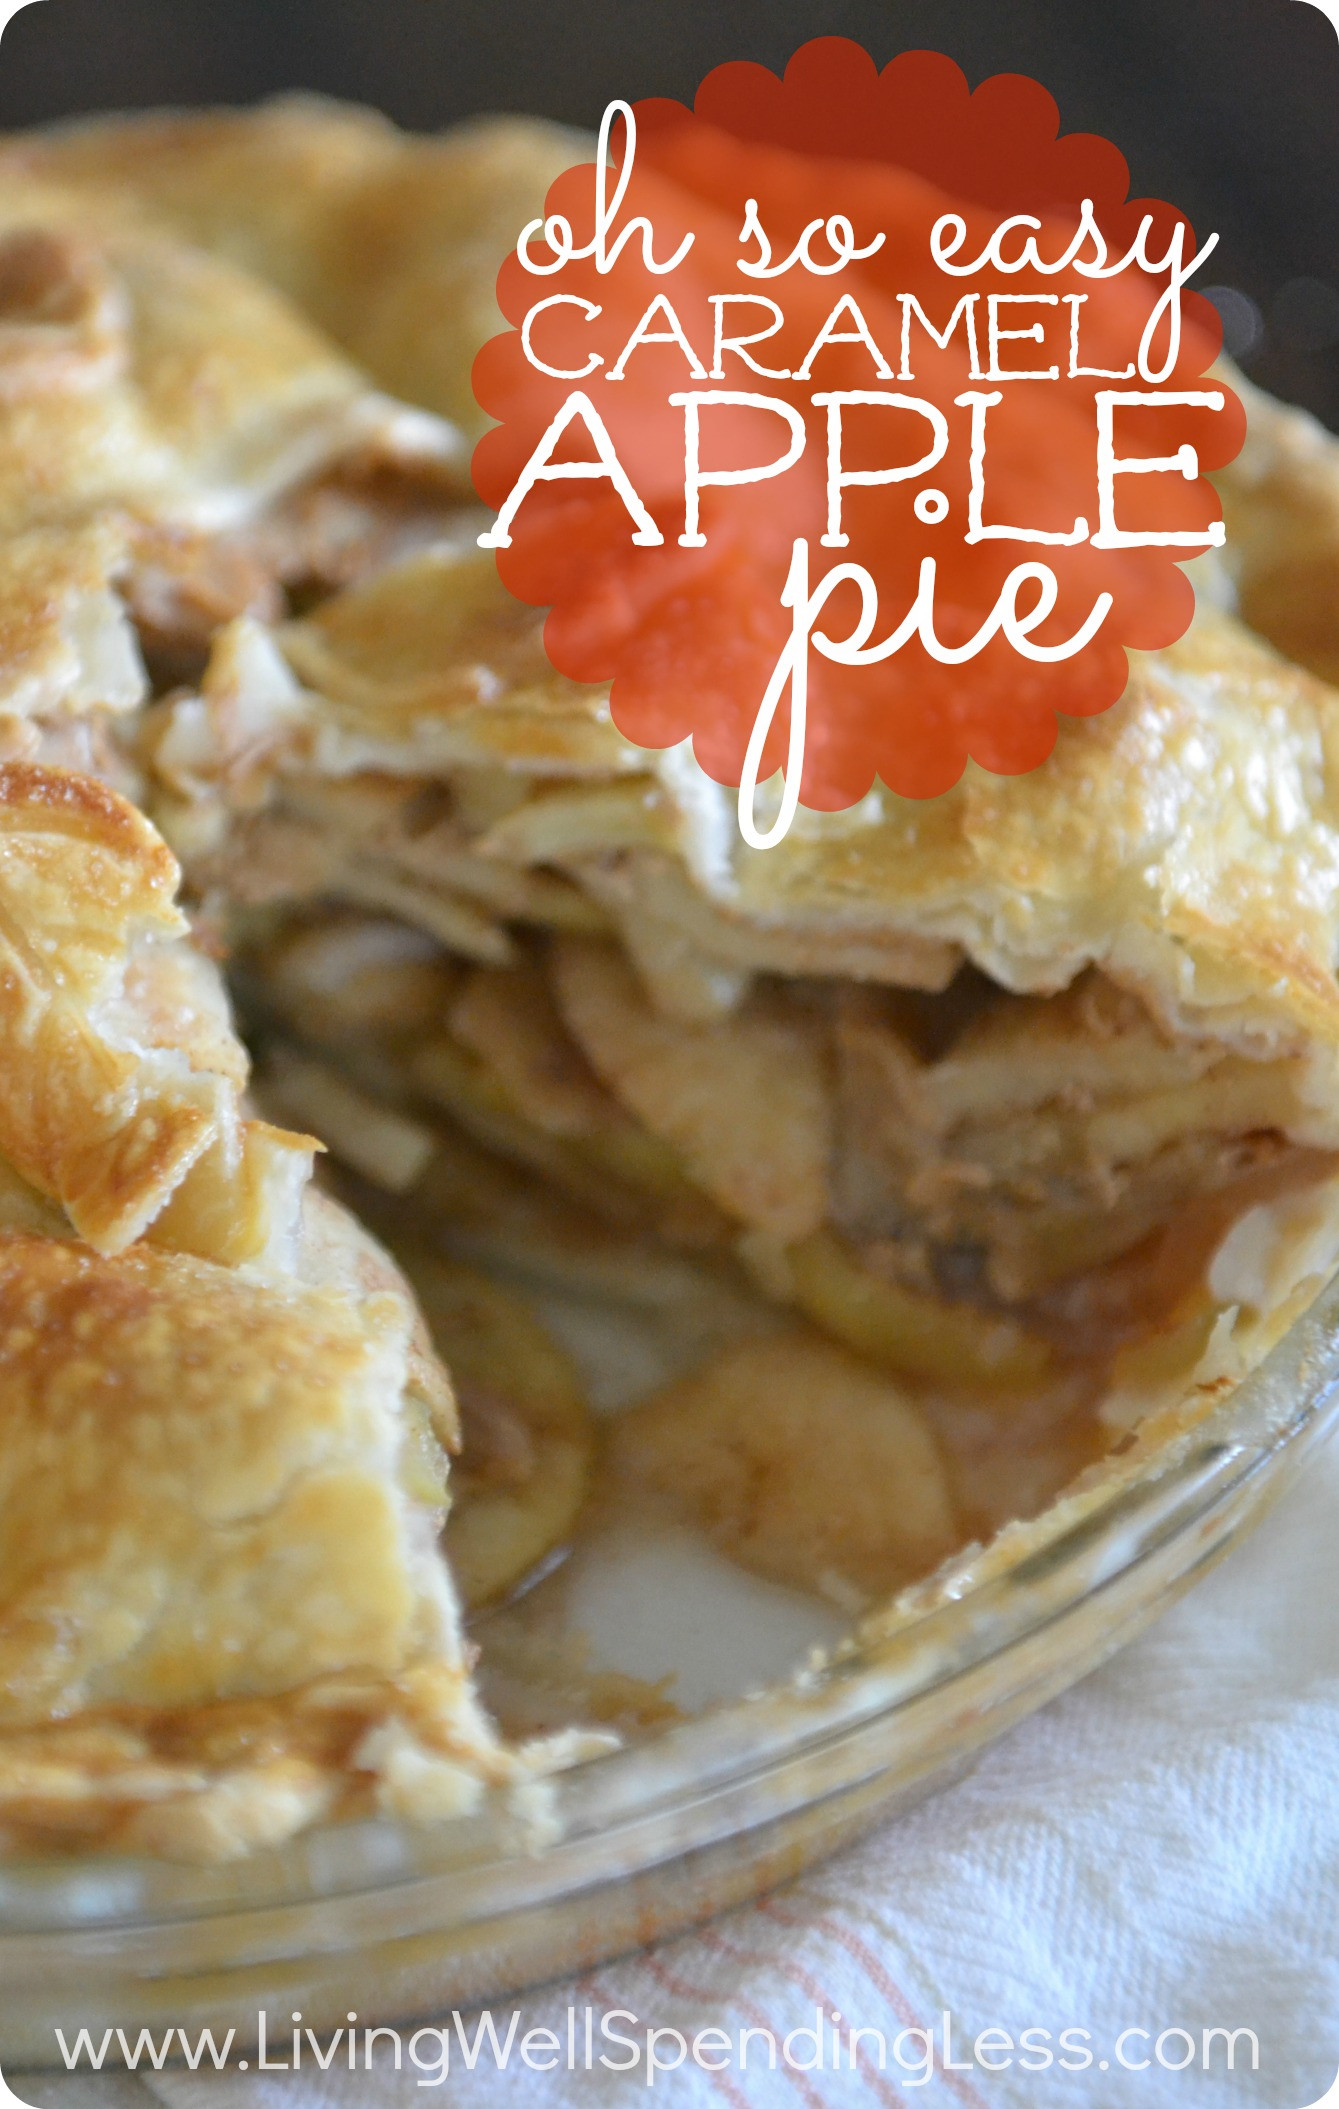 Apple Pie Recipe Easy  Oh So Easy Caramel Apple Pie